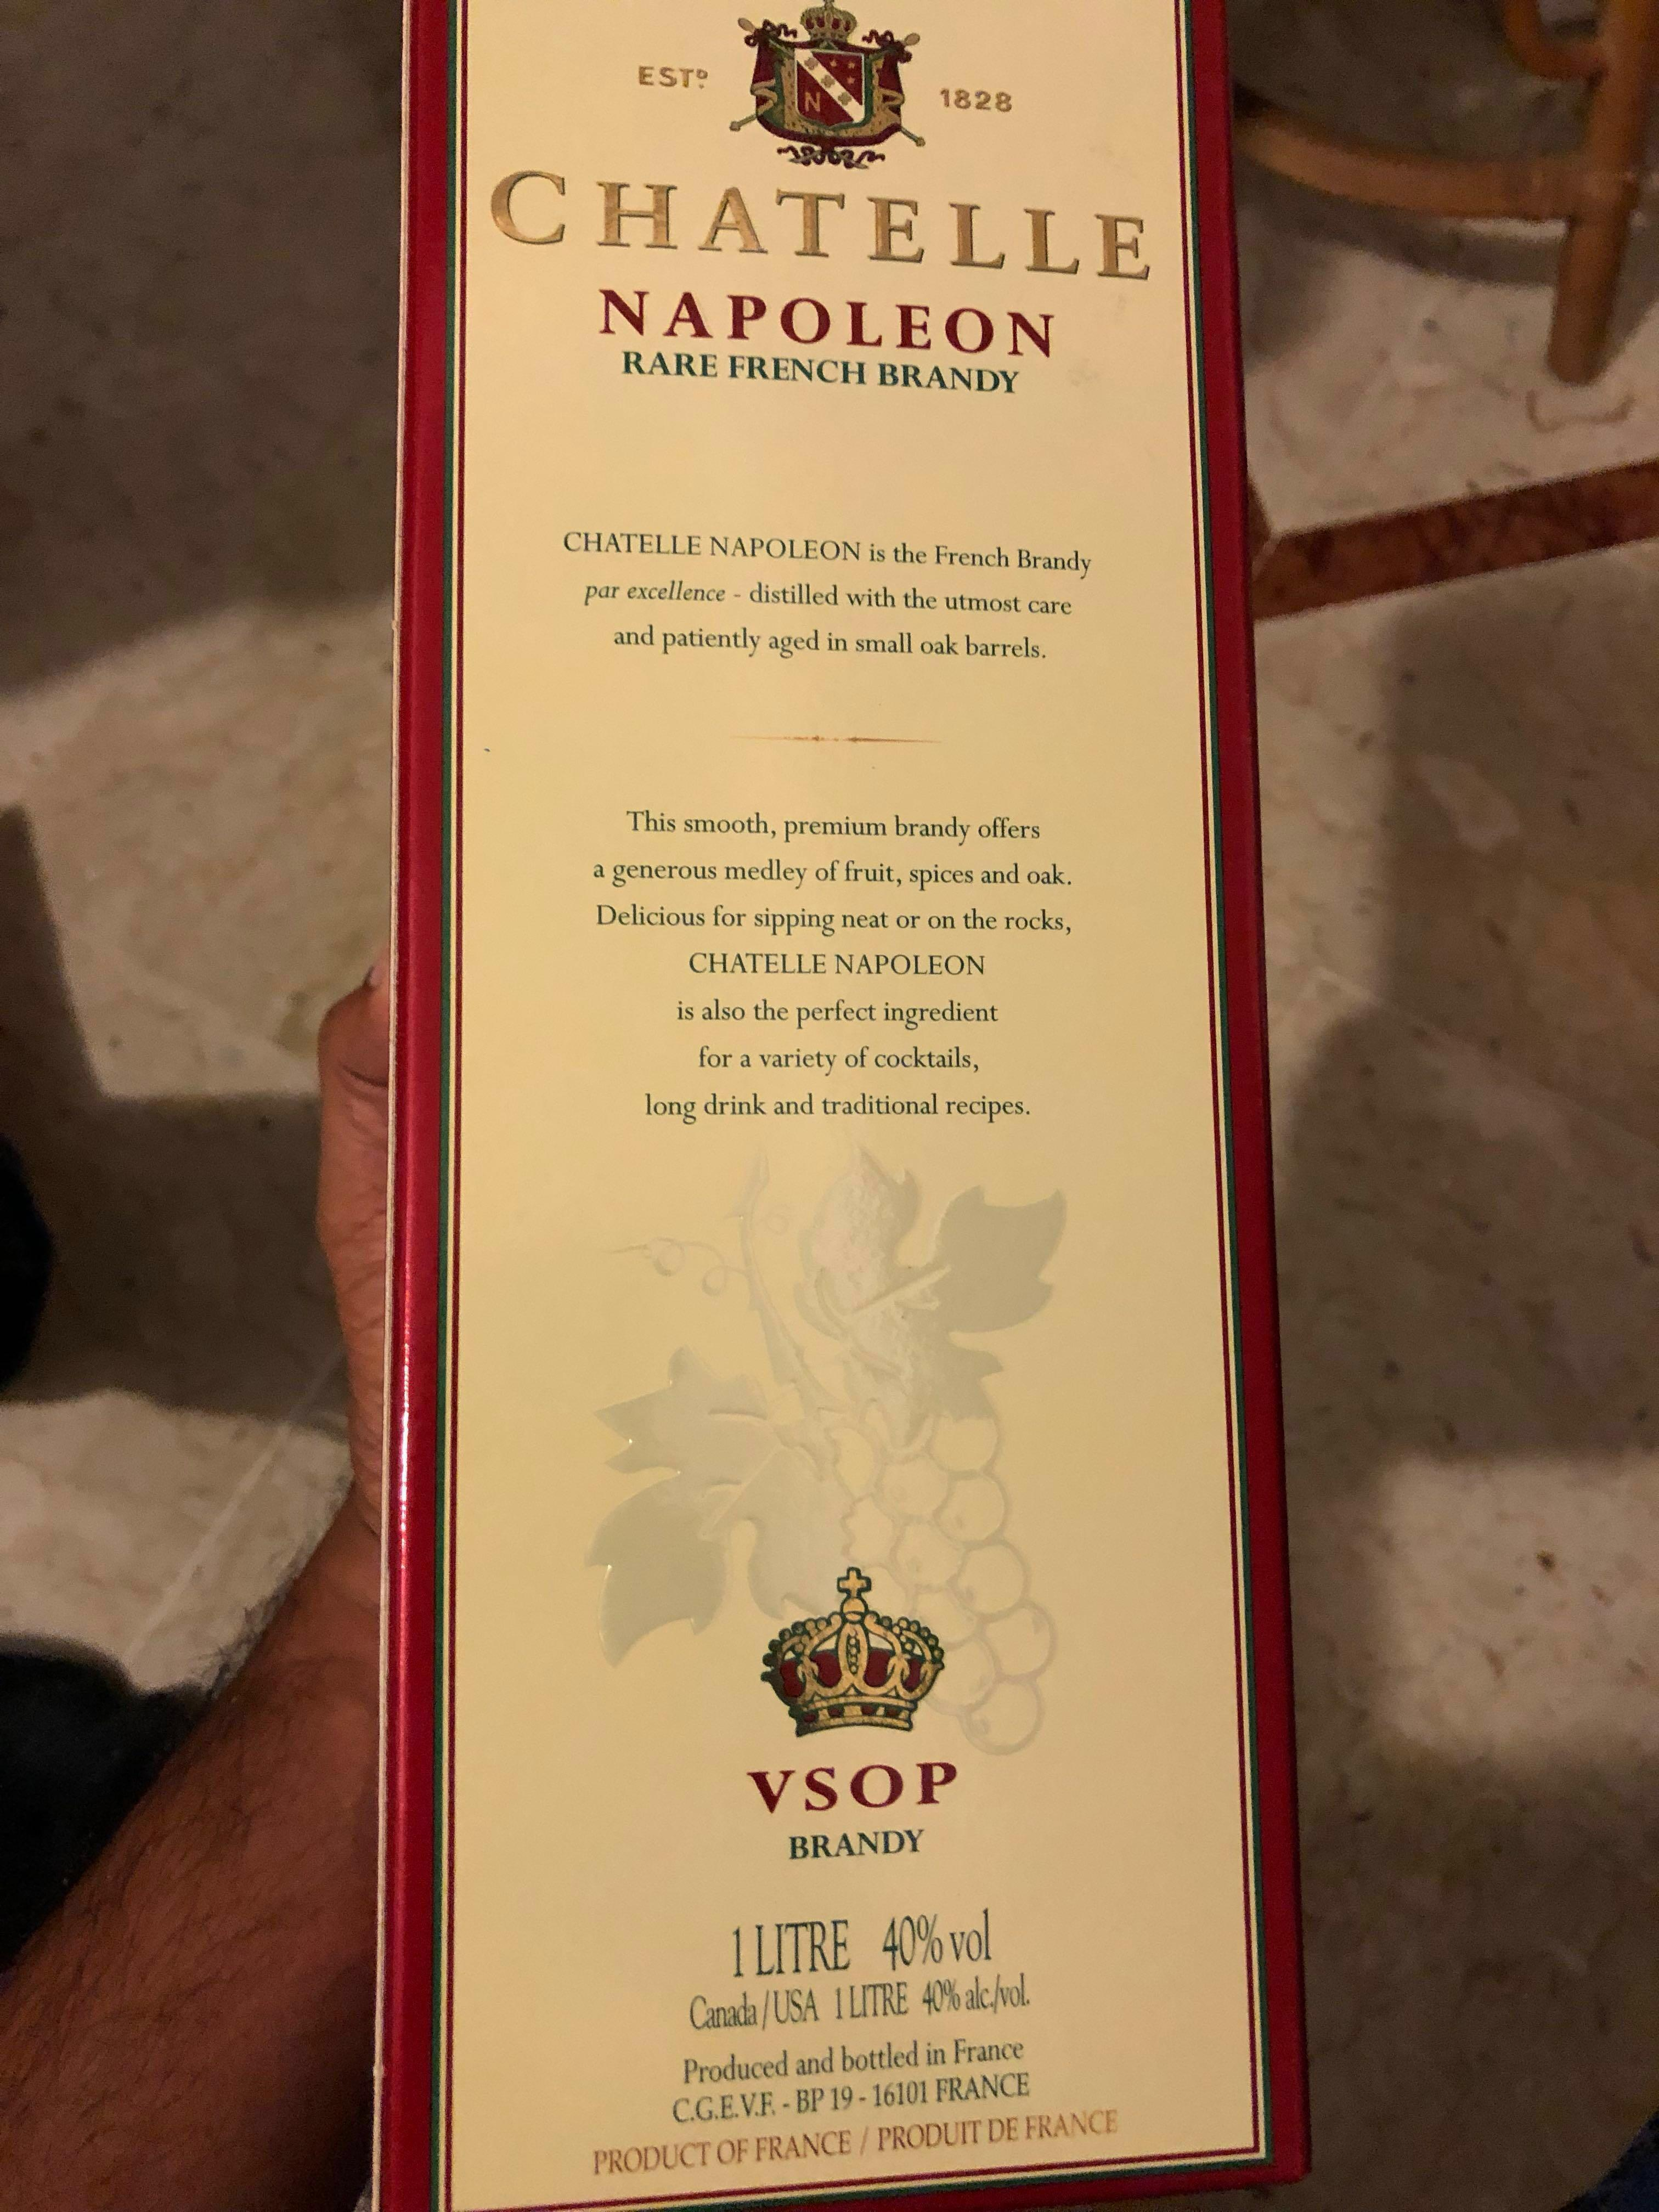 Chatelle VSOP brandy 1L. Free gift wrapping